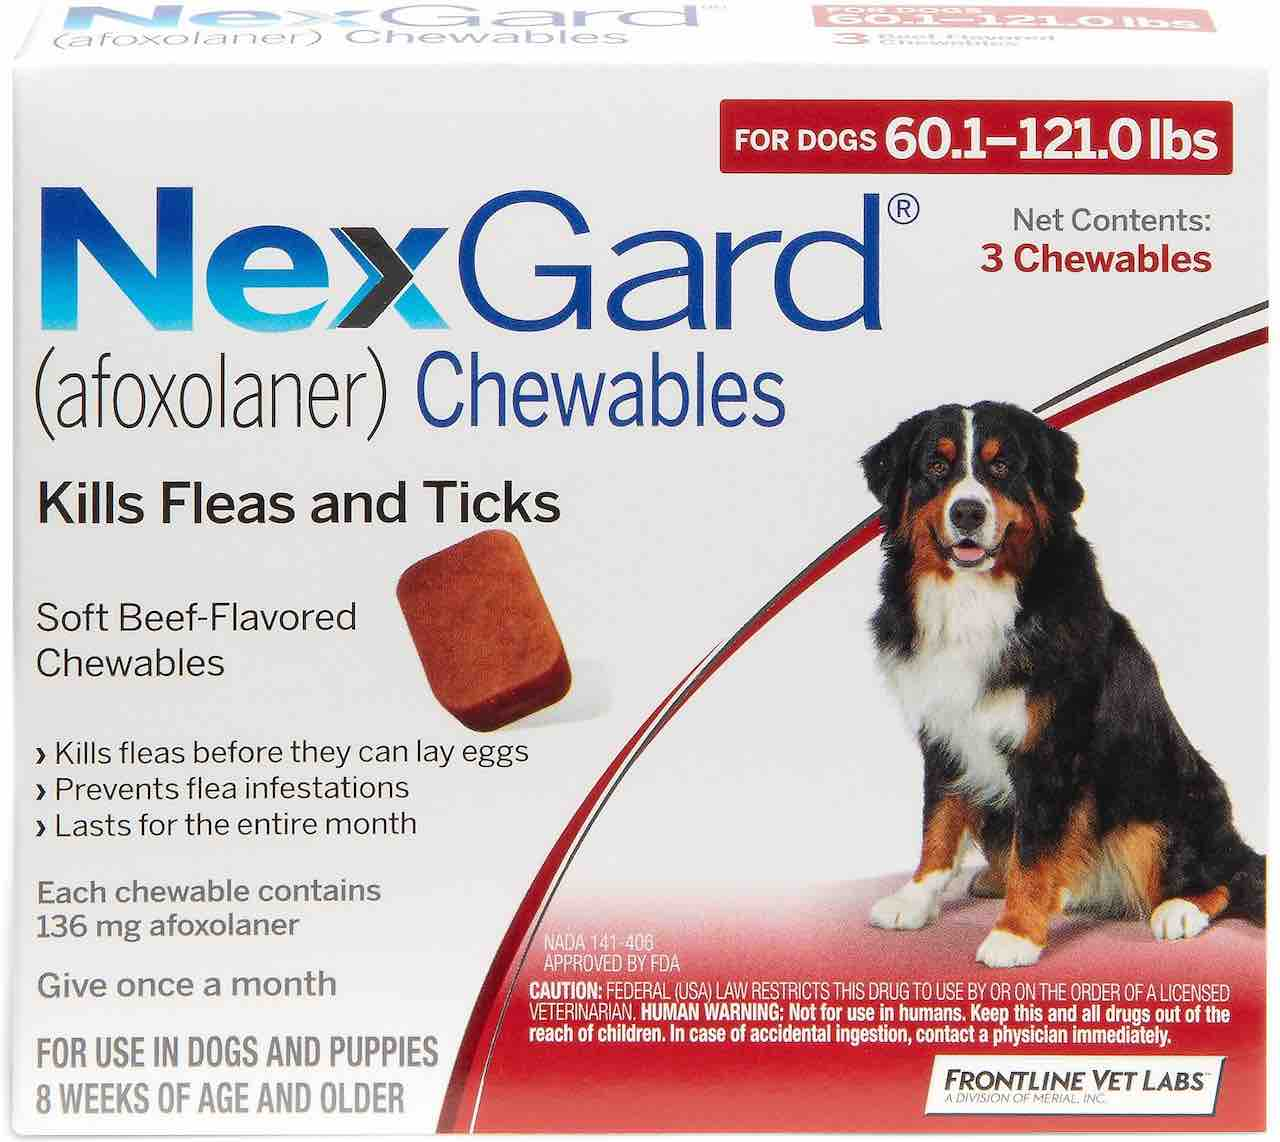 NexGard 3 chewables for dogs 60.1-121 lbs (Red) 1